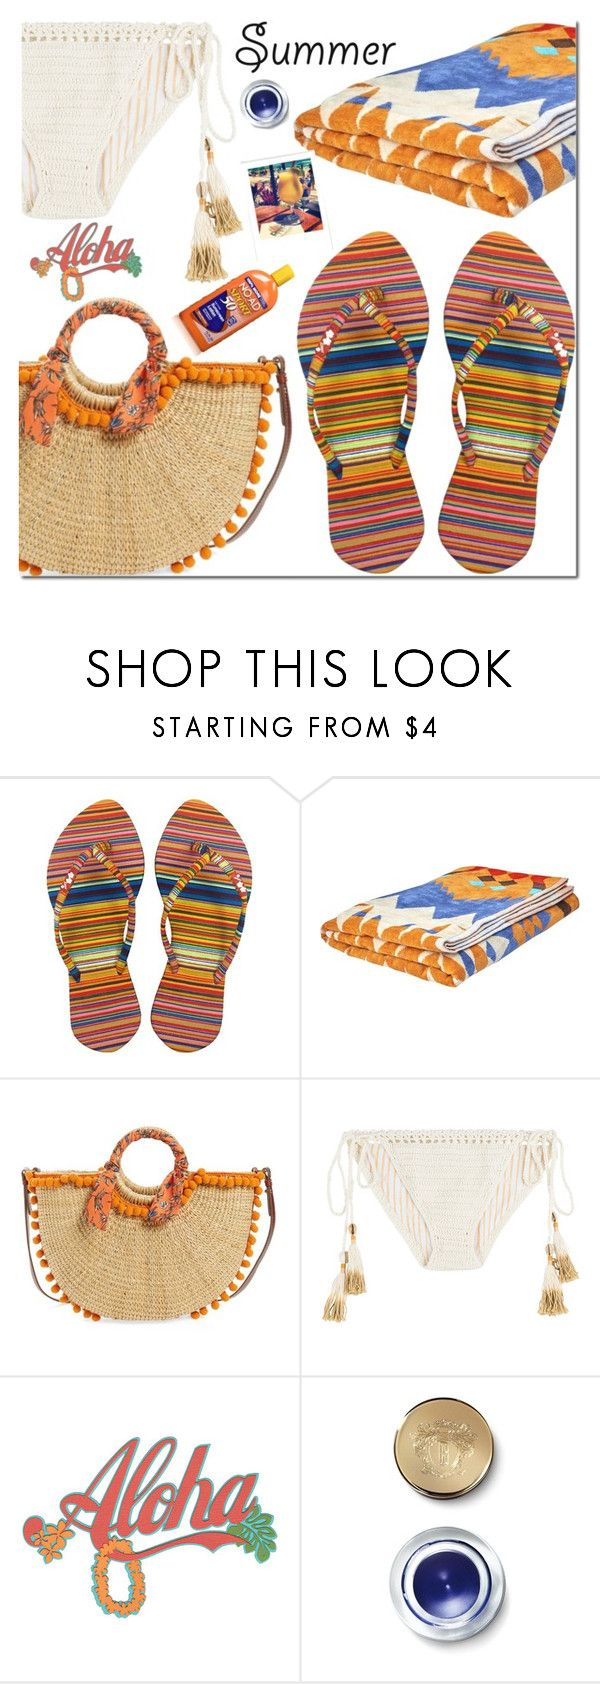 CHOSECHIC by mada-malureanu on Polyvore featuring SHE MADE ME, Sam Edelman, Bobbi Brown Cosmetics, Woolrich, beach, FlipFlops, summerbrights and chosechic